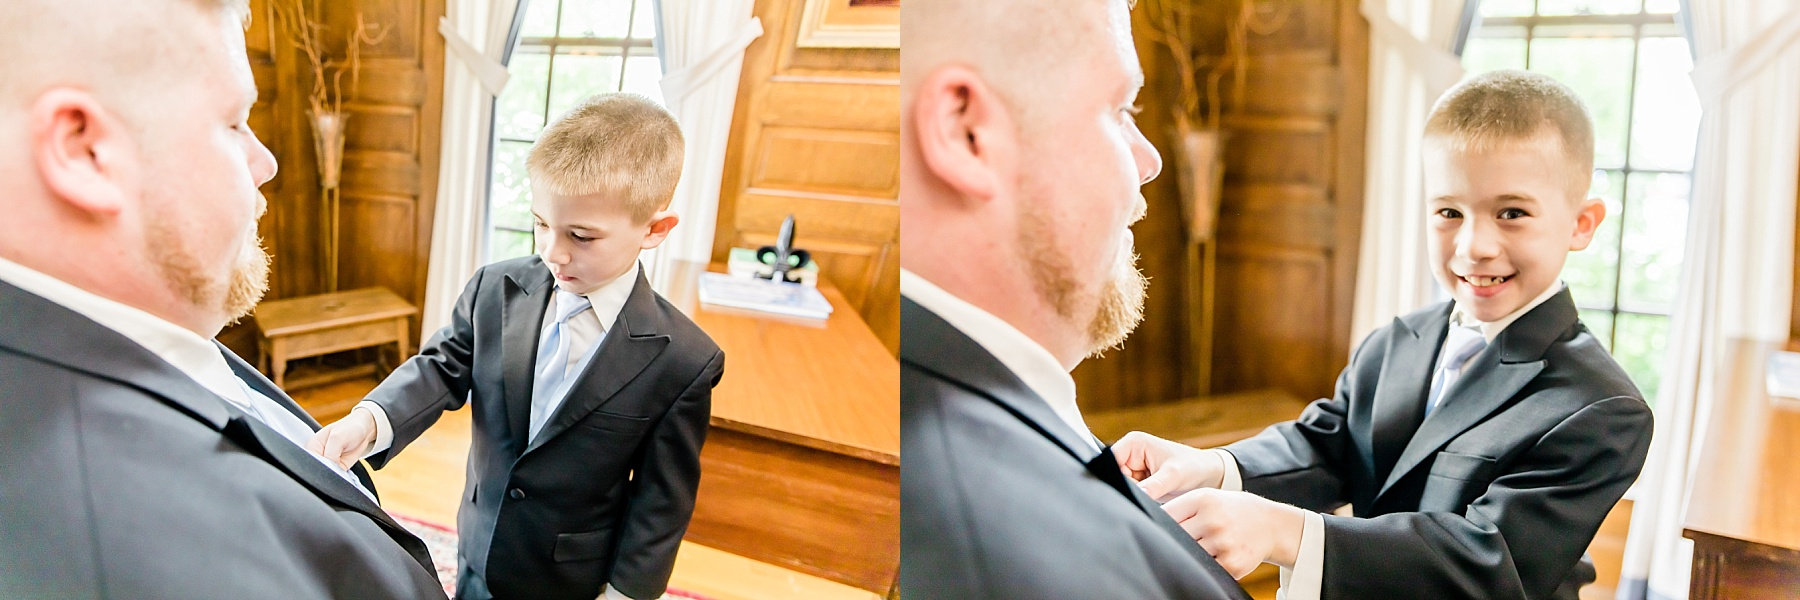 lafayette indiana wedding photographer photography thomas duncan hall_0126.jpg